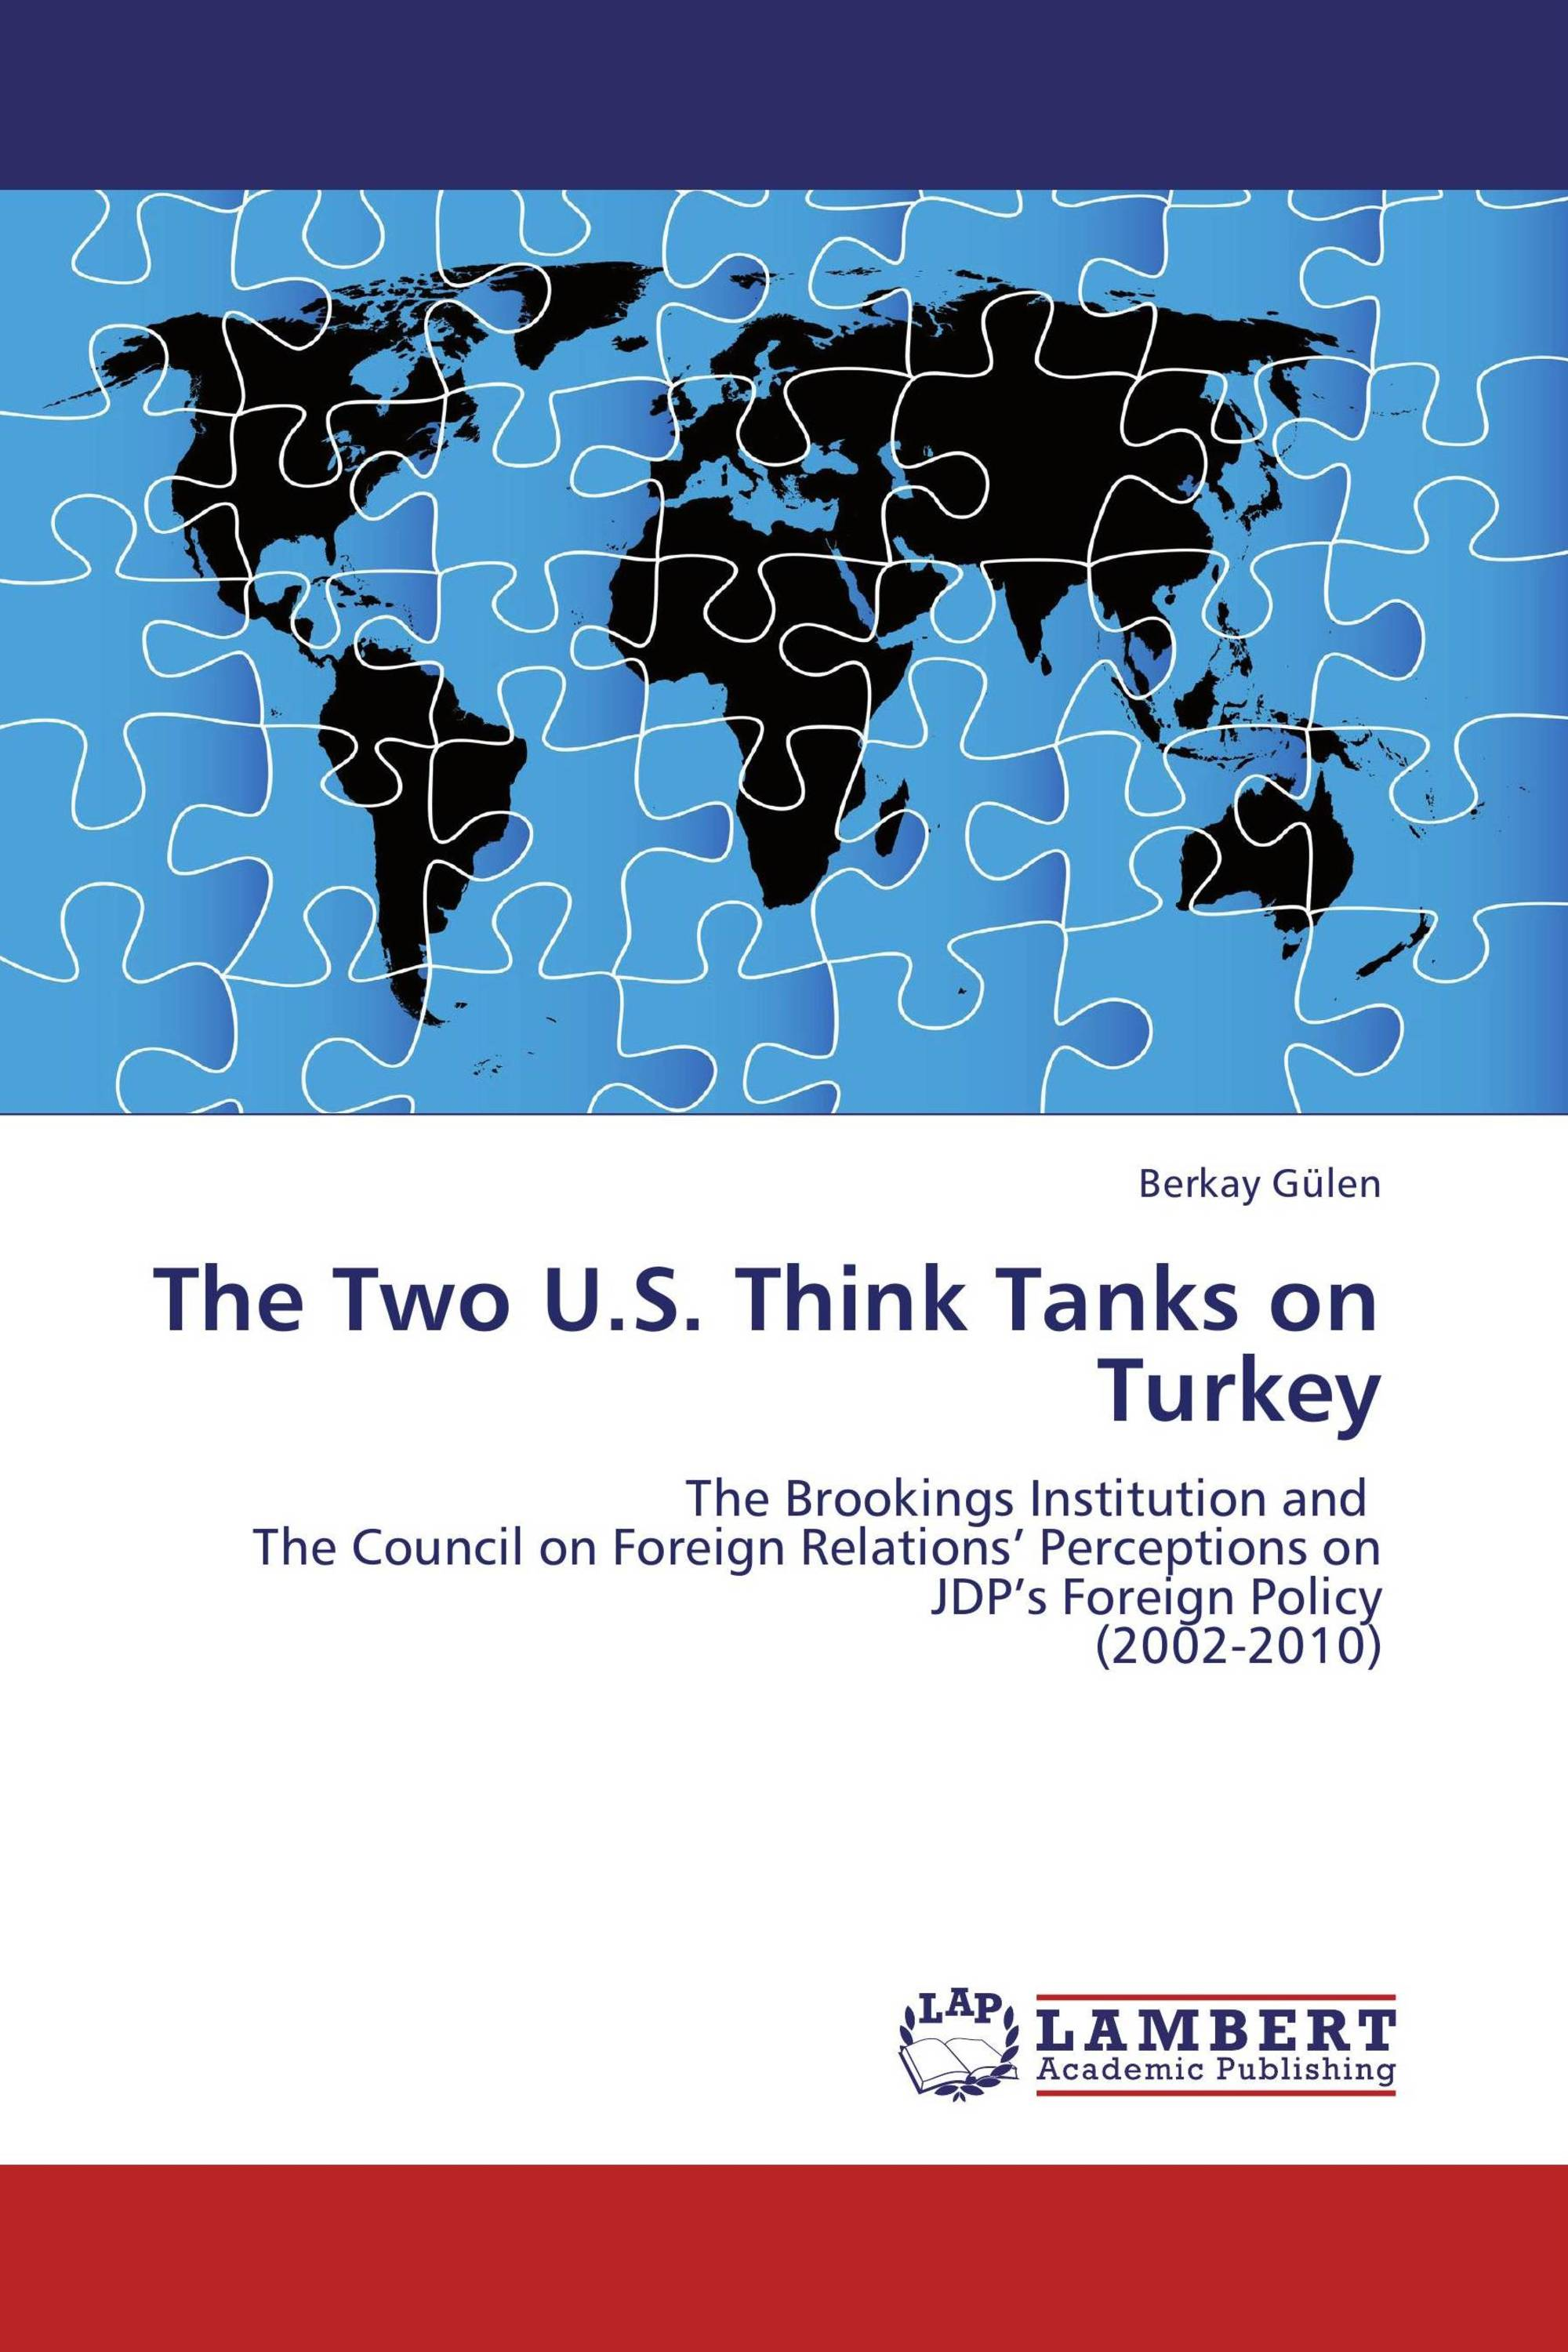 The Two U.S. Think Tanks on Turkey